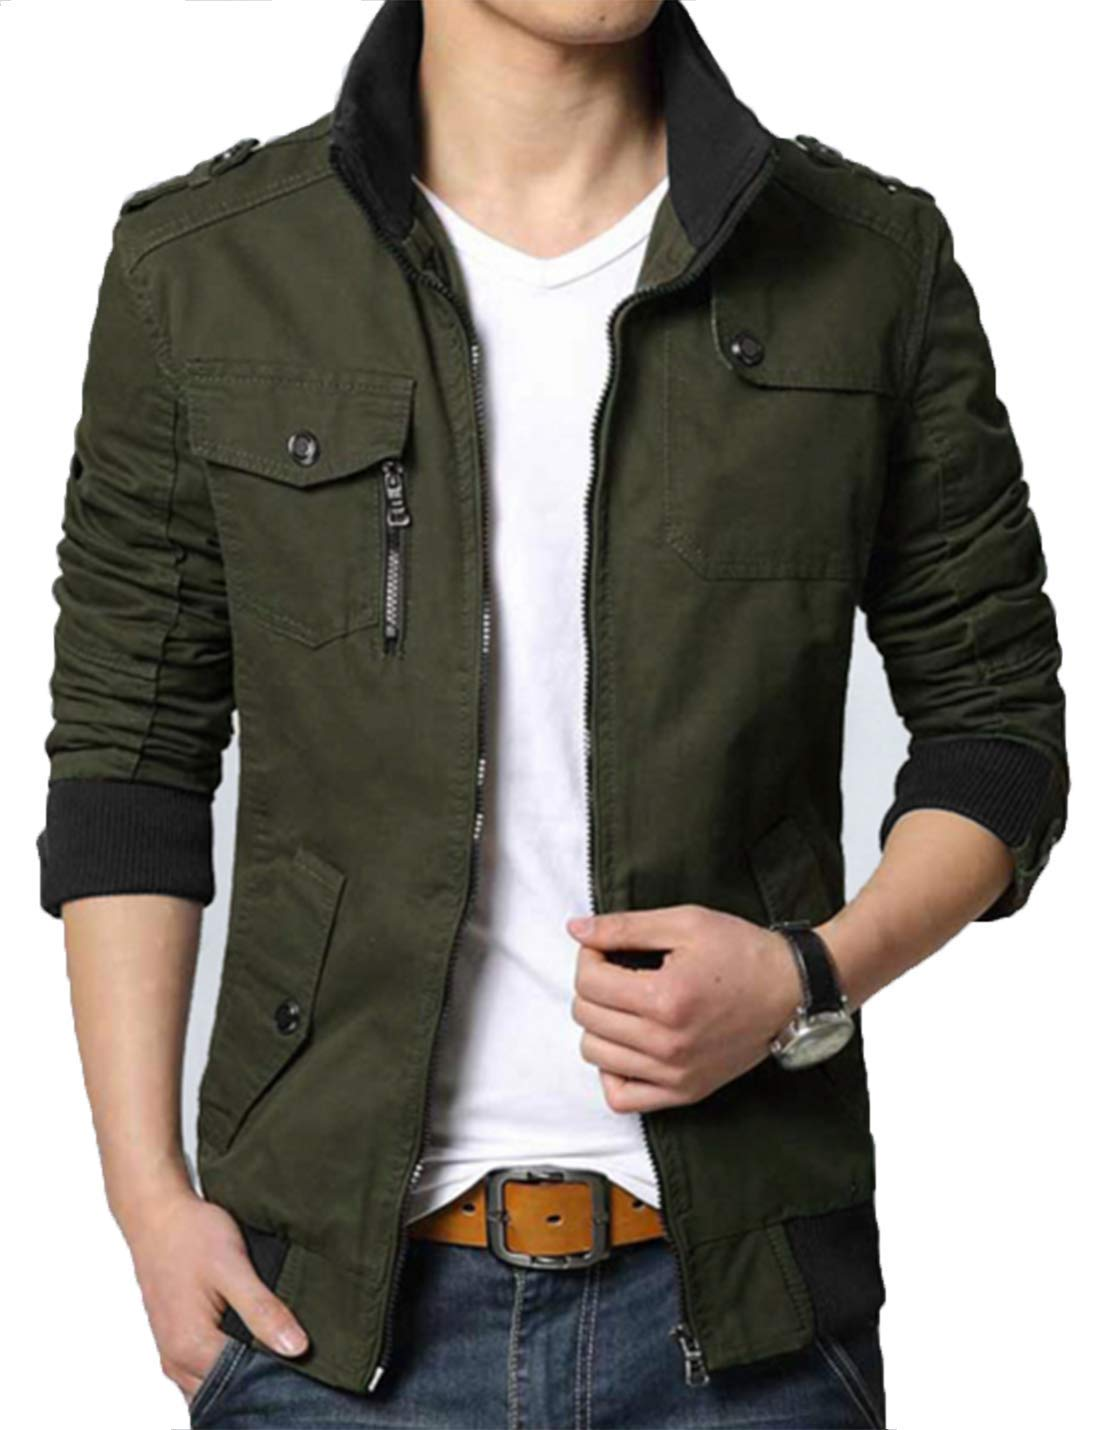 XueYin Men's Solid Cotton Casual Wear Stand Collar Jacket?Dark Army Green,S Size by XueYin